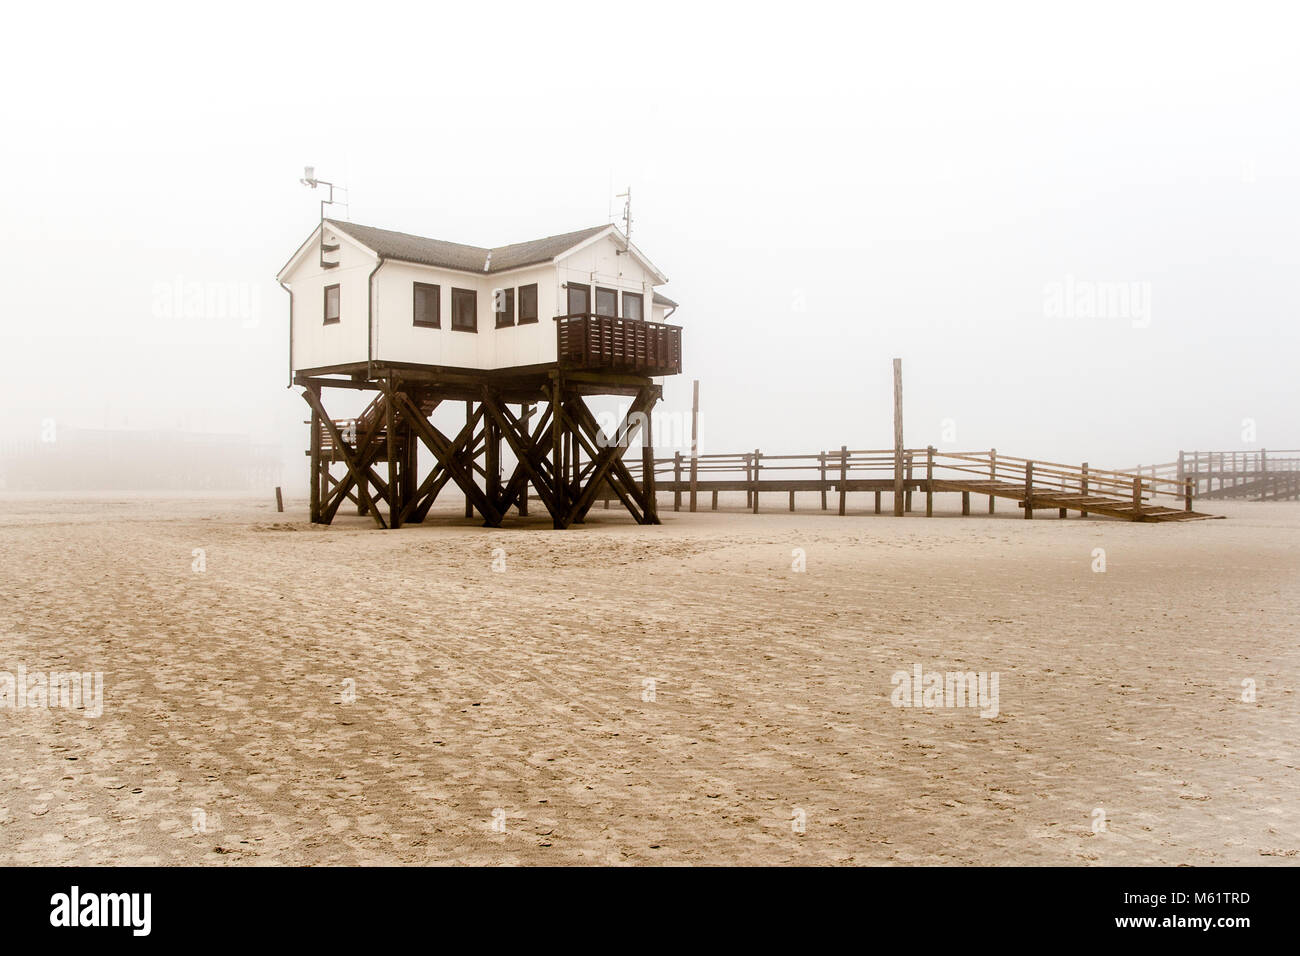 The pile dwellings rise up to seven meters above the beach. For more than 100 years, the constructions made of larch wood have shaped the beach image of St. Peter-Ording. Lake dwelling, pier house at the beach of St Peter Ording in Germany Stock Photo